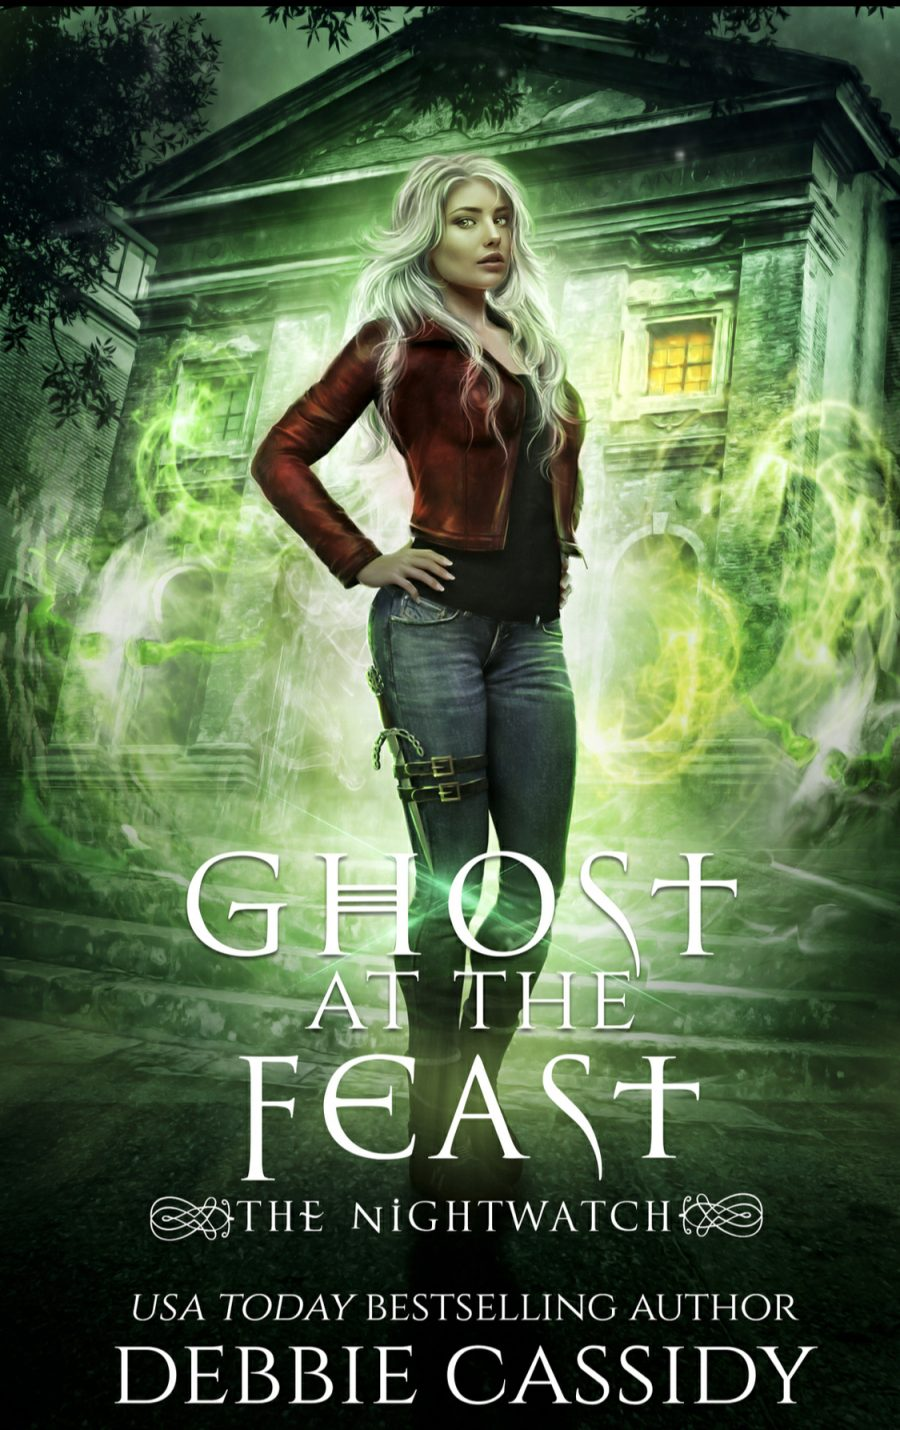 Ghost at the Feast (the Nightwatch - Book 3) by Debbie Cassidy - A Book Review #BookReview #UrbanFantasy #UF #4Stars #KindleUnlimited #KU